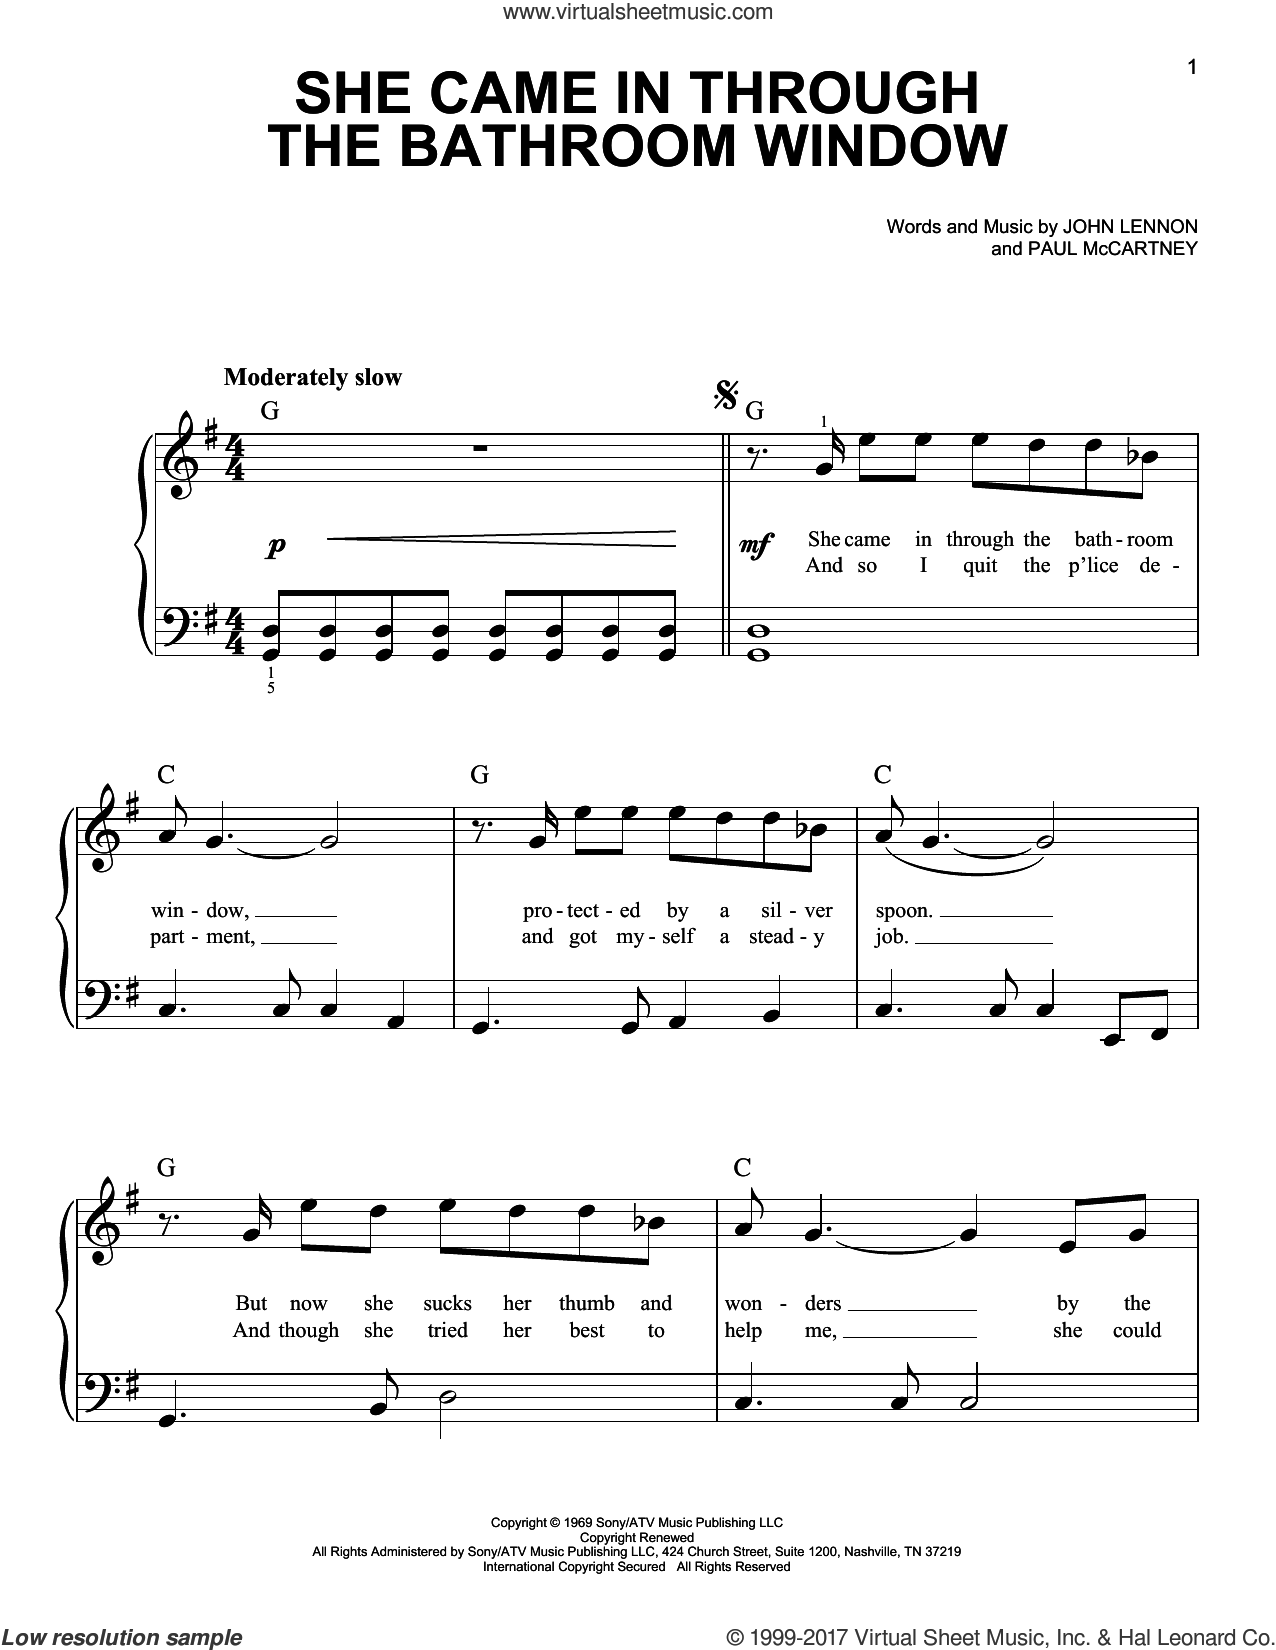 She Came In Through The Bathroom Window sheet music for piano solo by The Beatles, Joe Cocker, John Lennon and Paul McCartney, easy skill level